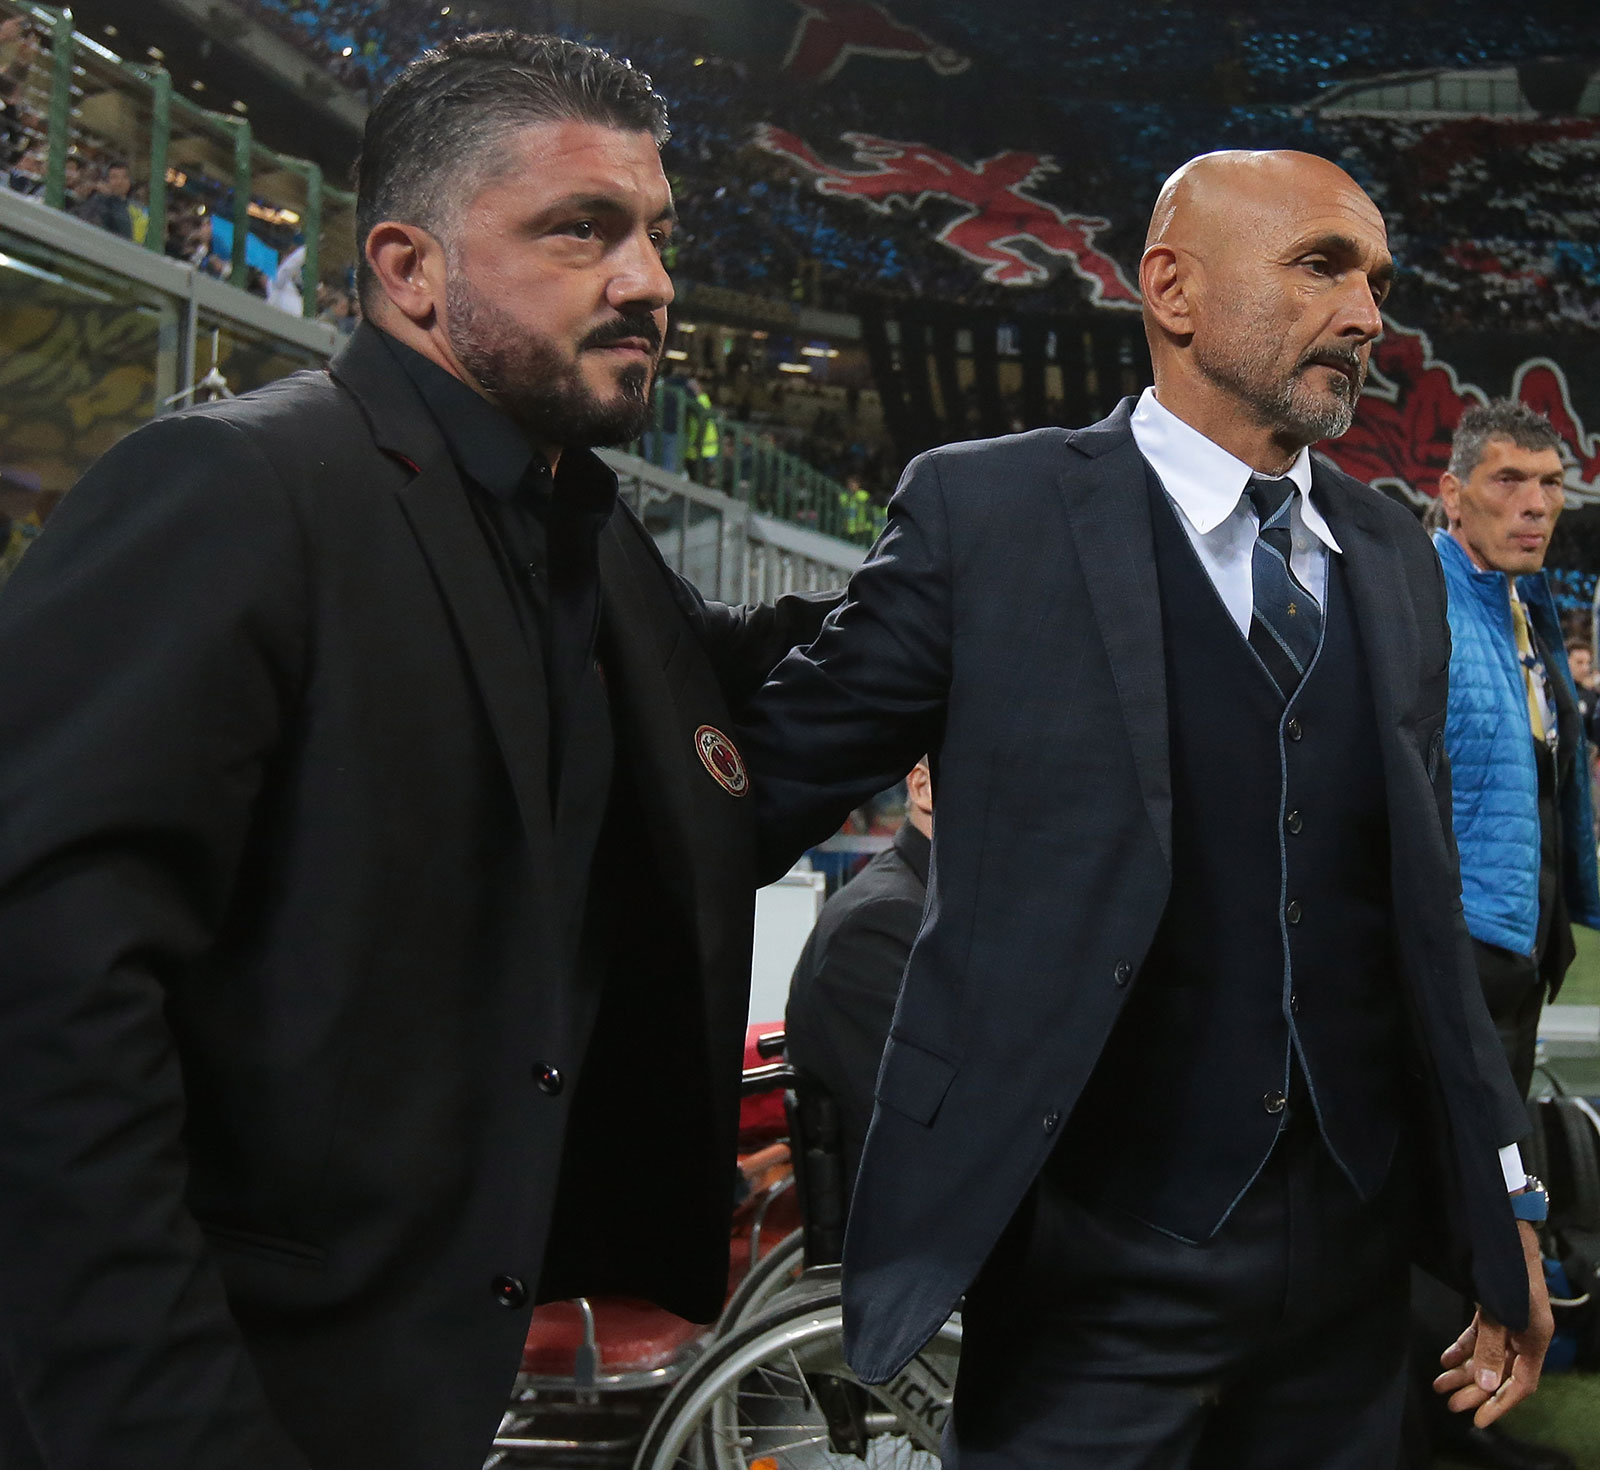 Gennaro Gattuso and Luciano Spalletti during Inter-Milan at Stadio San Siro on October 21, 2018. (Photo by Emilio Andreoli/Getty Images)